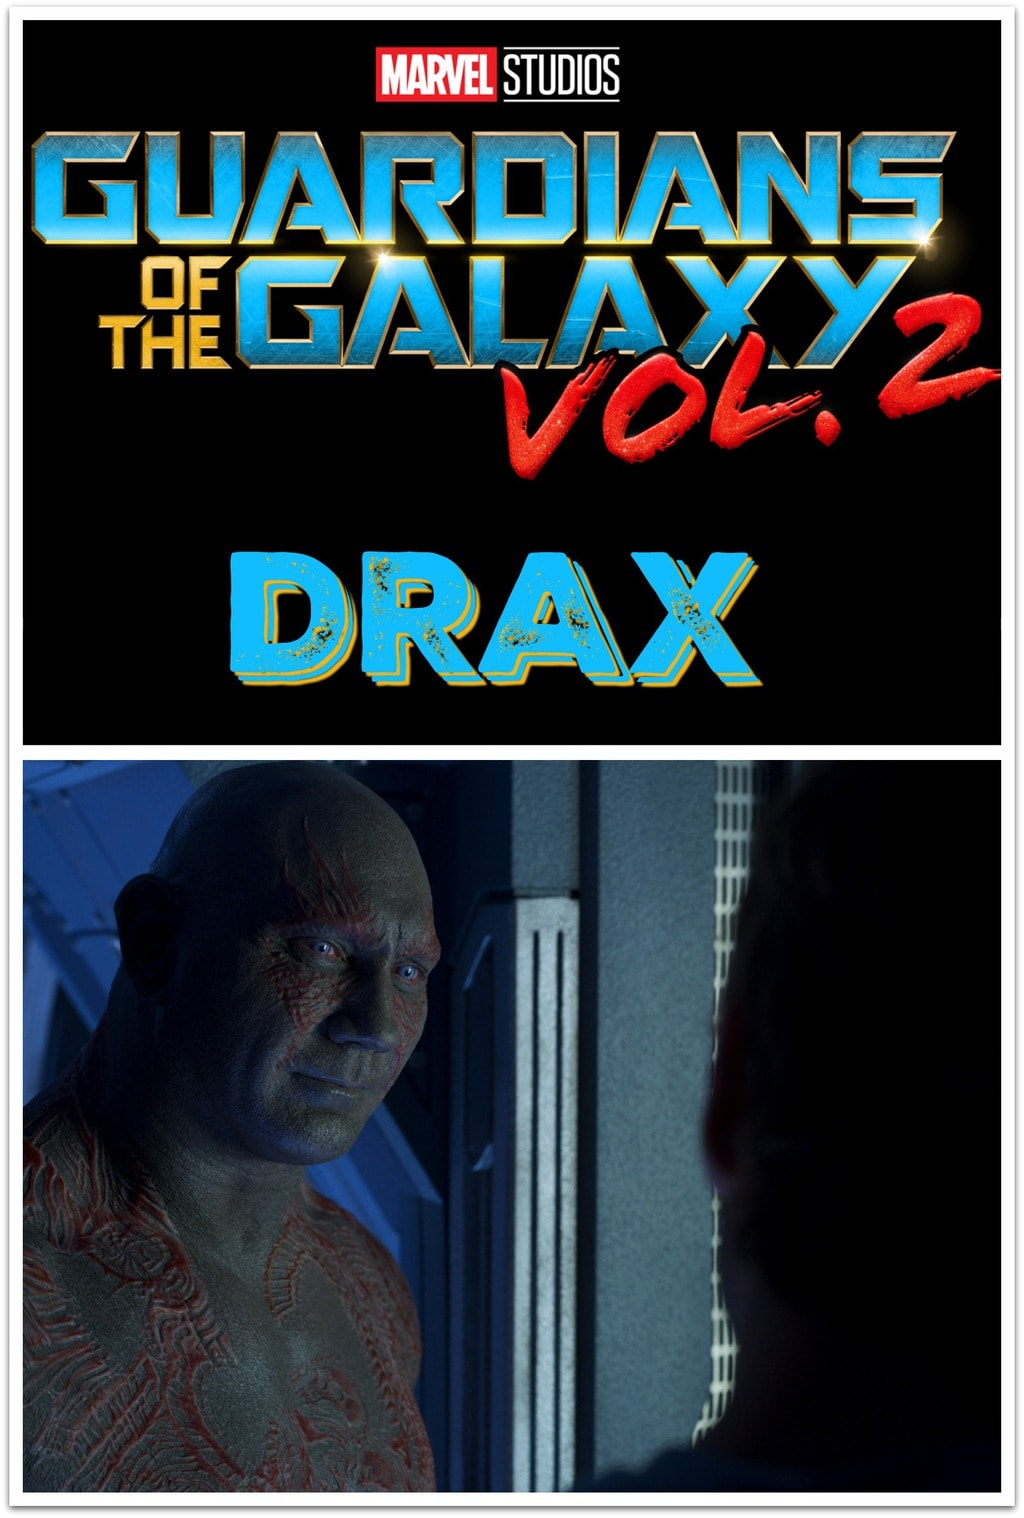 Who's excited about seeing Dave Bautista as Drax in Guardians of the Galaxy Vol. 2? This movie is going to be so amazing!